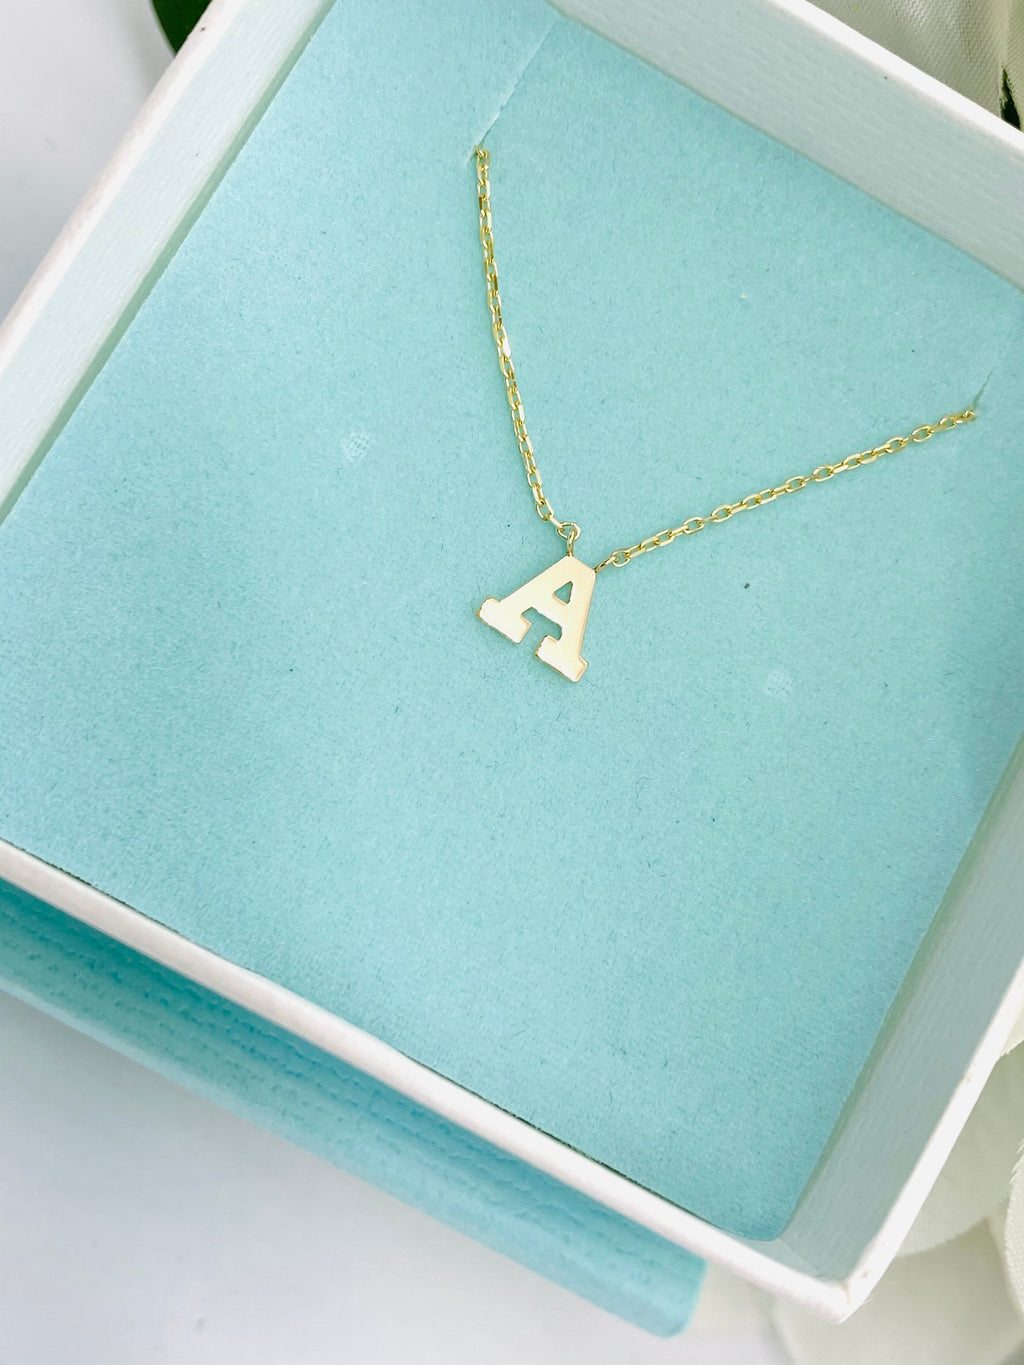 Single Block Initial (Letter) Necklace 14 Karat Gold